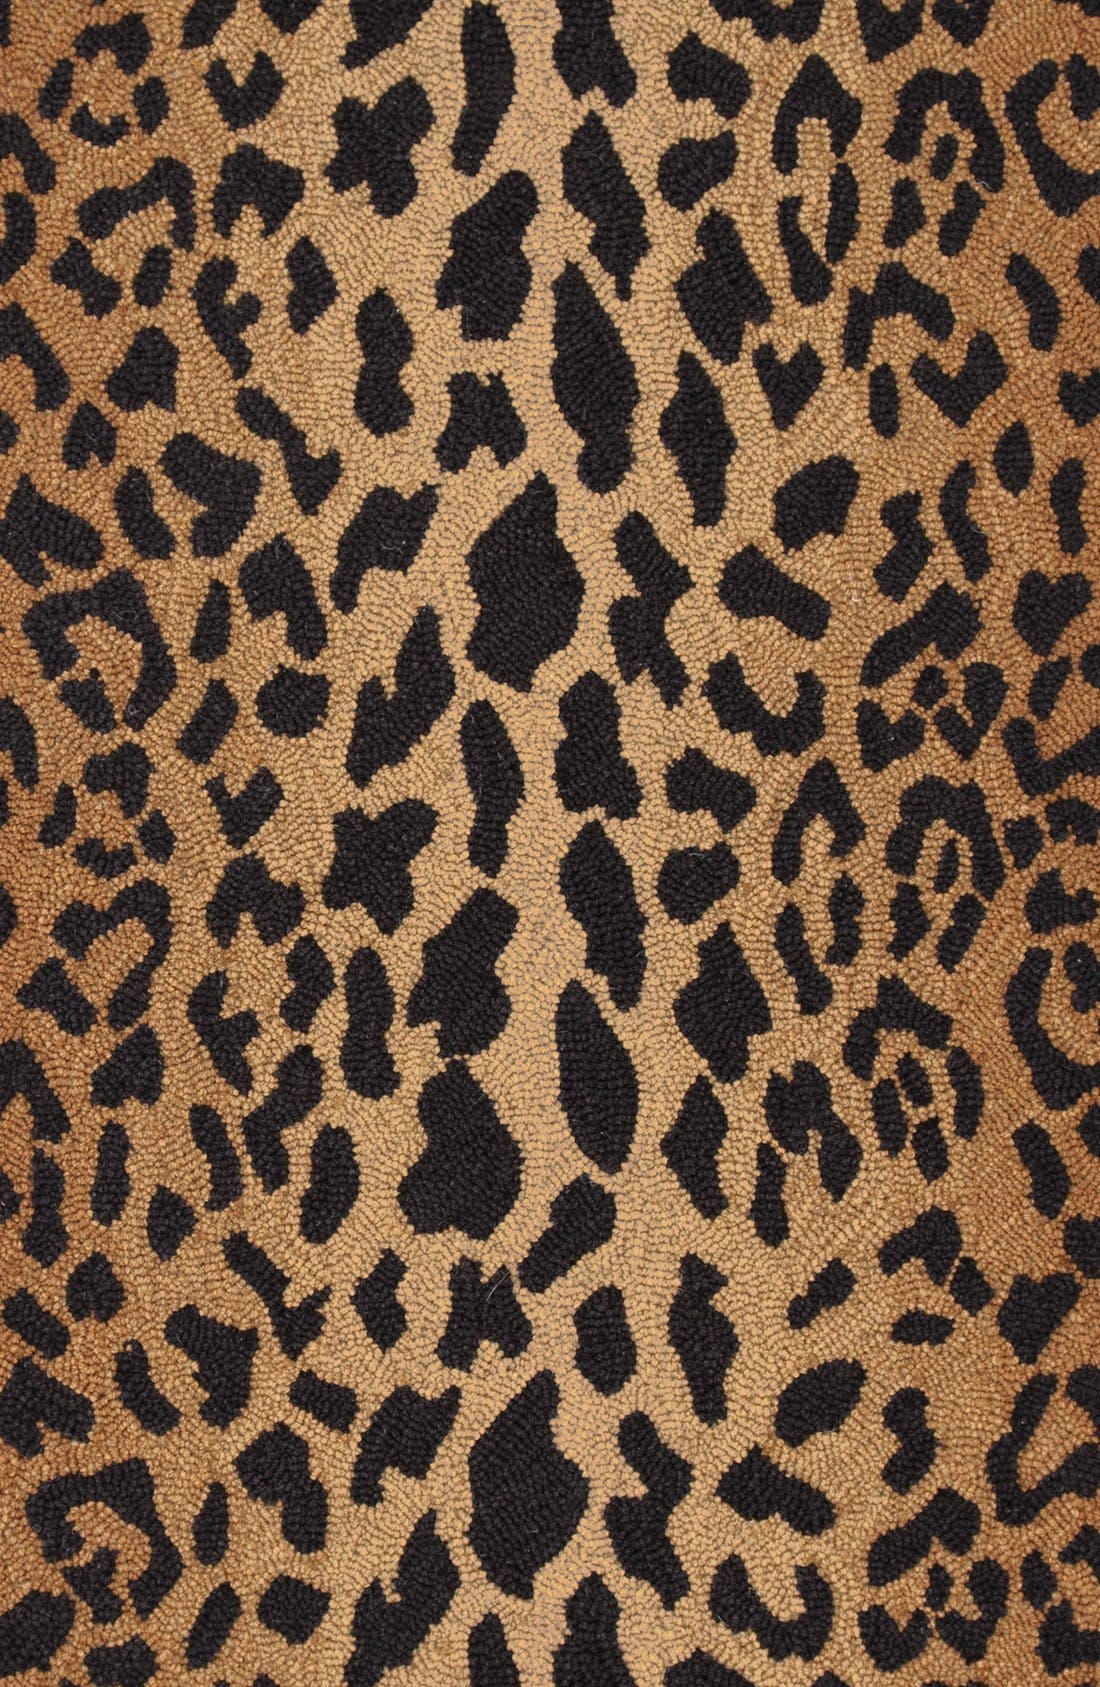 Leopard Print Wool Rug,                             Alternate thumbnail 2, color,                             Brown